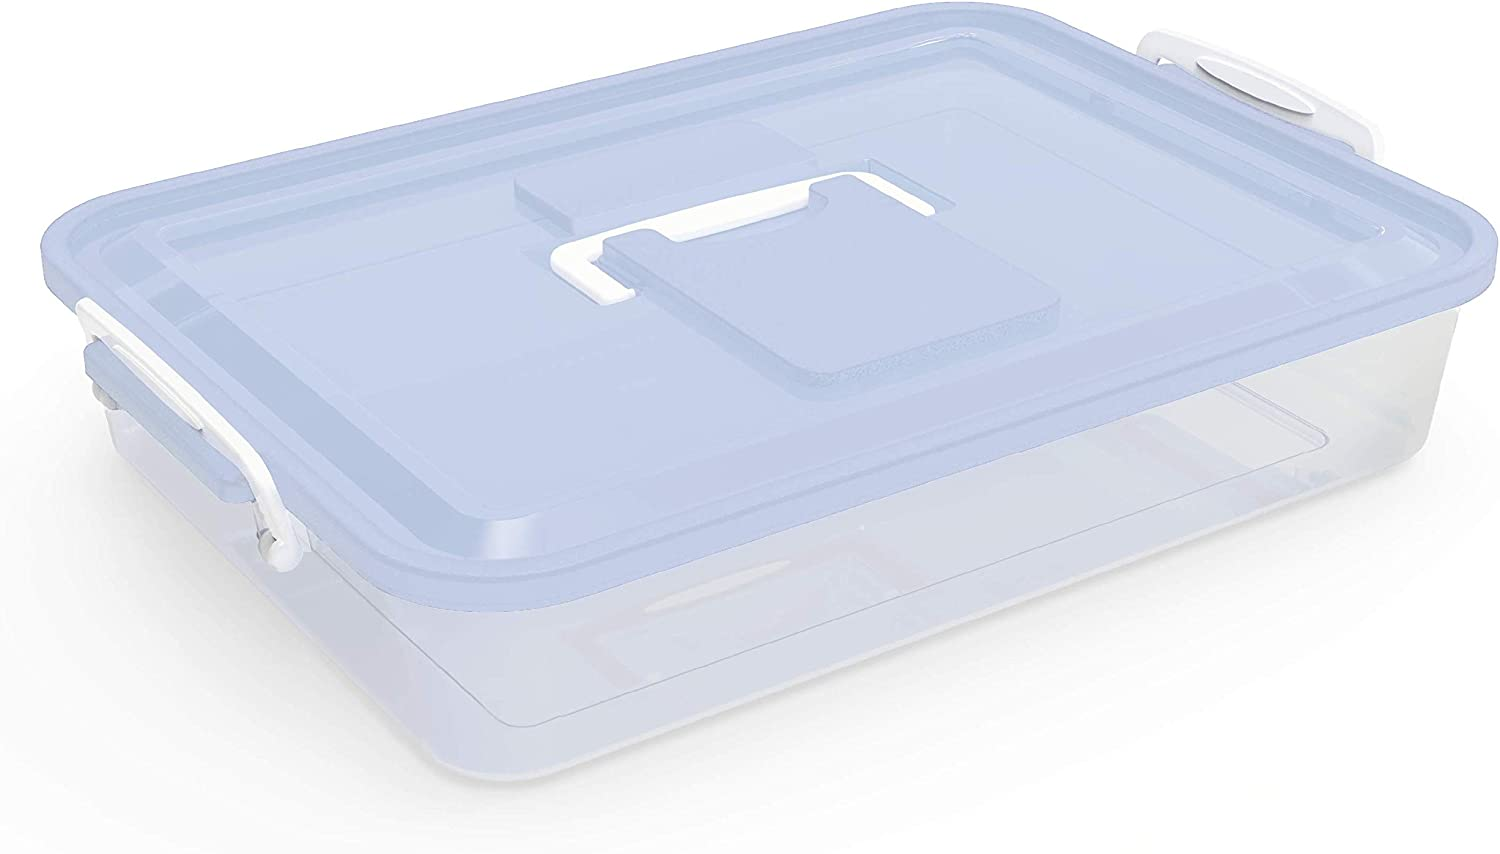 Chef Pomodoro Dough Proofing Box, 14 x 11-Inch, Fit 4-6 Dough Balls, Household Pizza Dough Tray Kit (Blue)